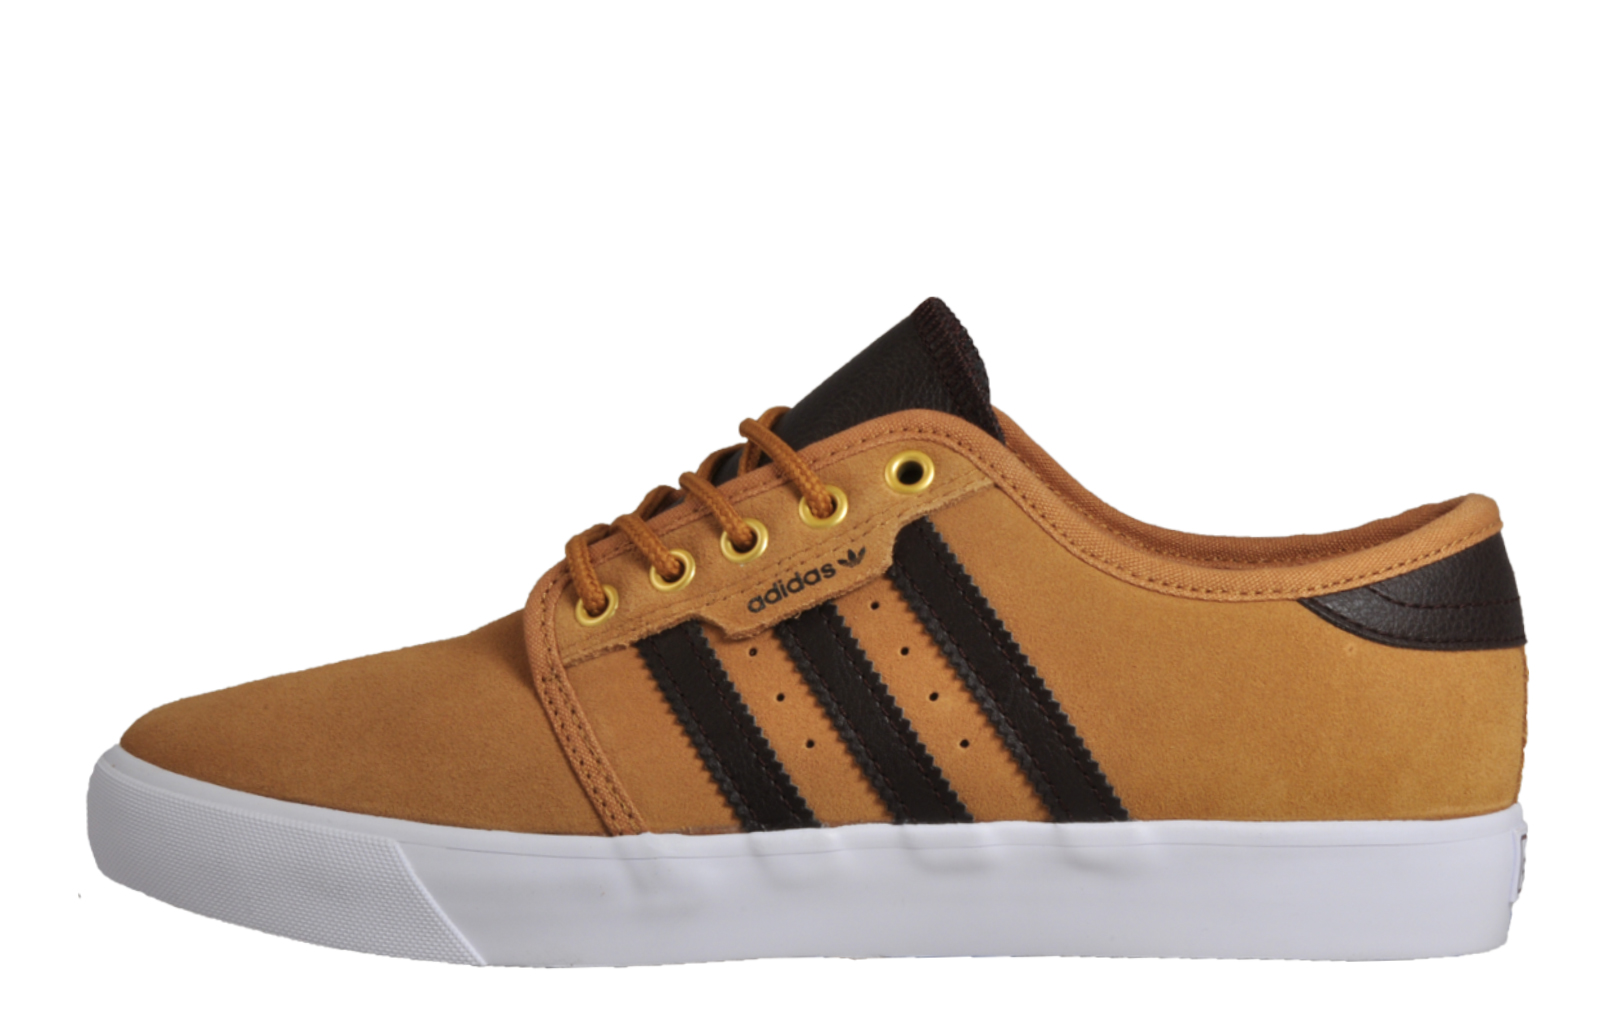 Adidas Originals Seeley Junior - AD165761